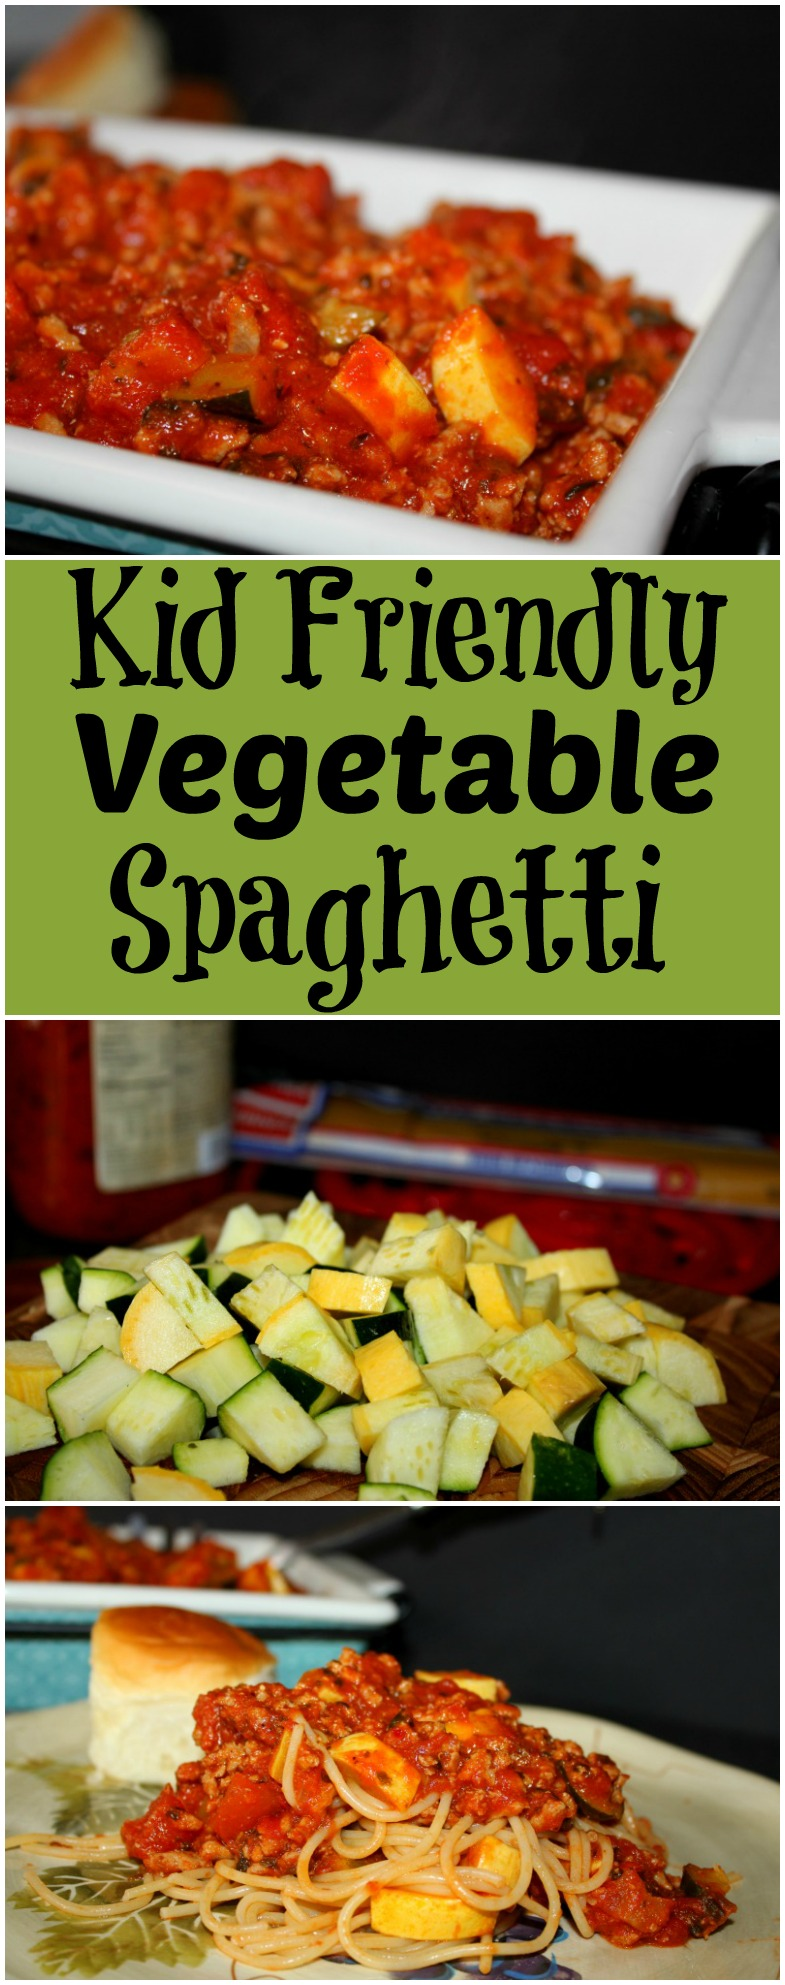 Vegetable Spaghetti Perfect for Kids Taste Buds